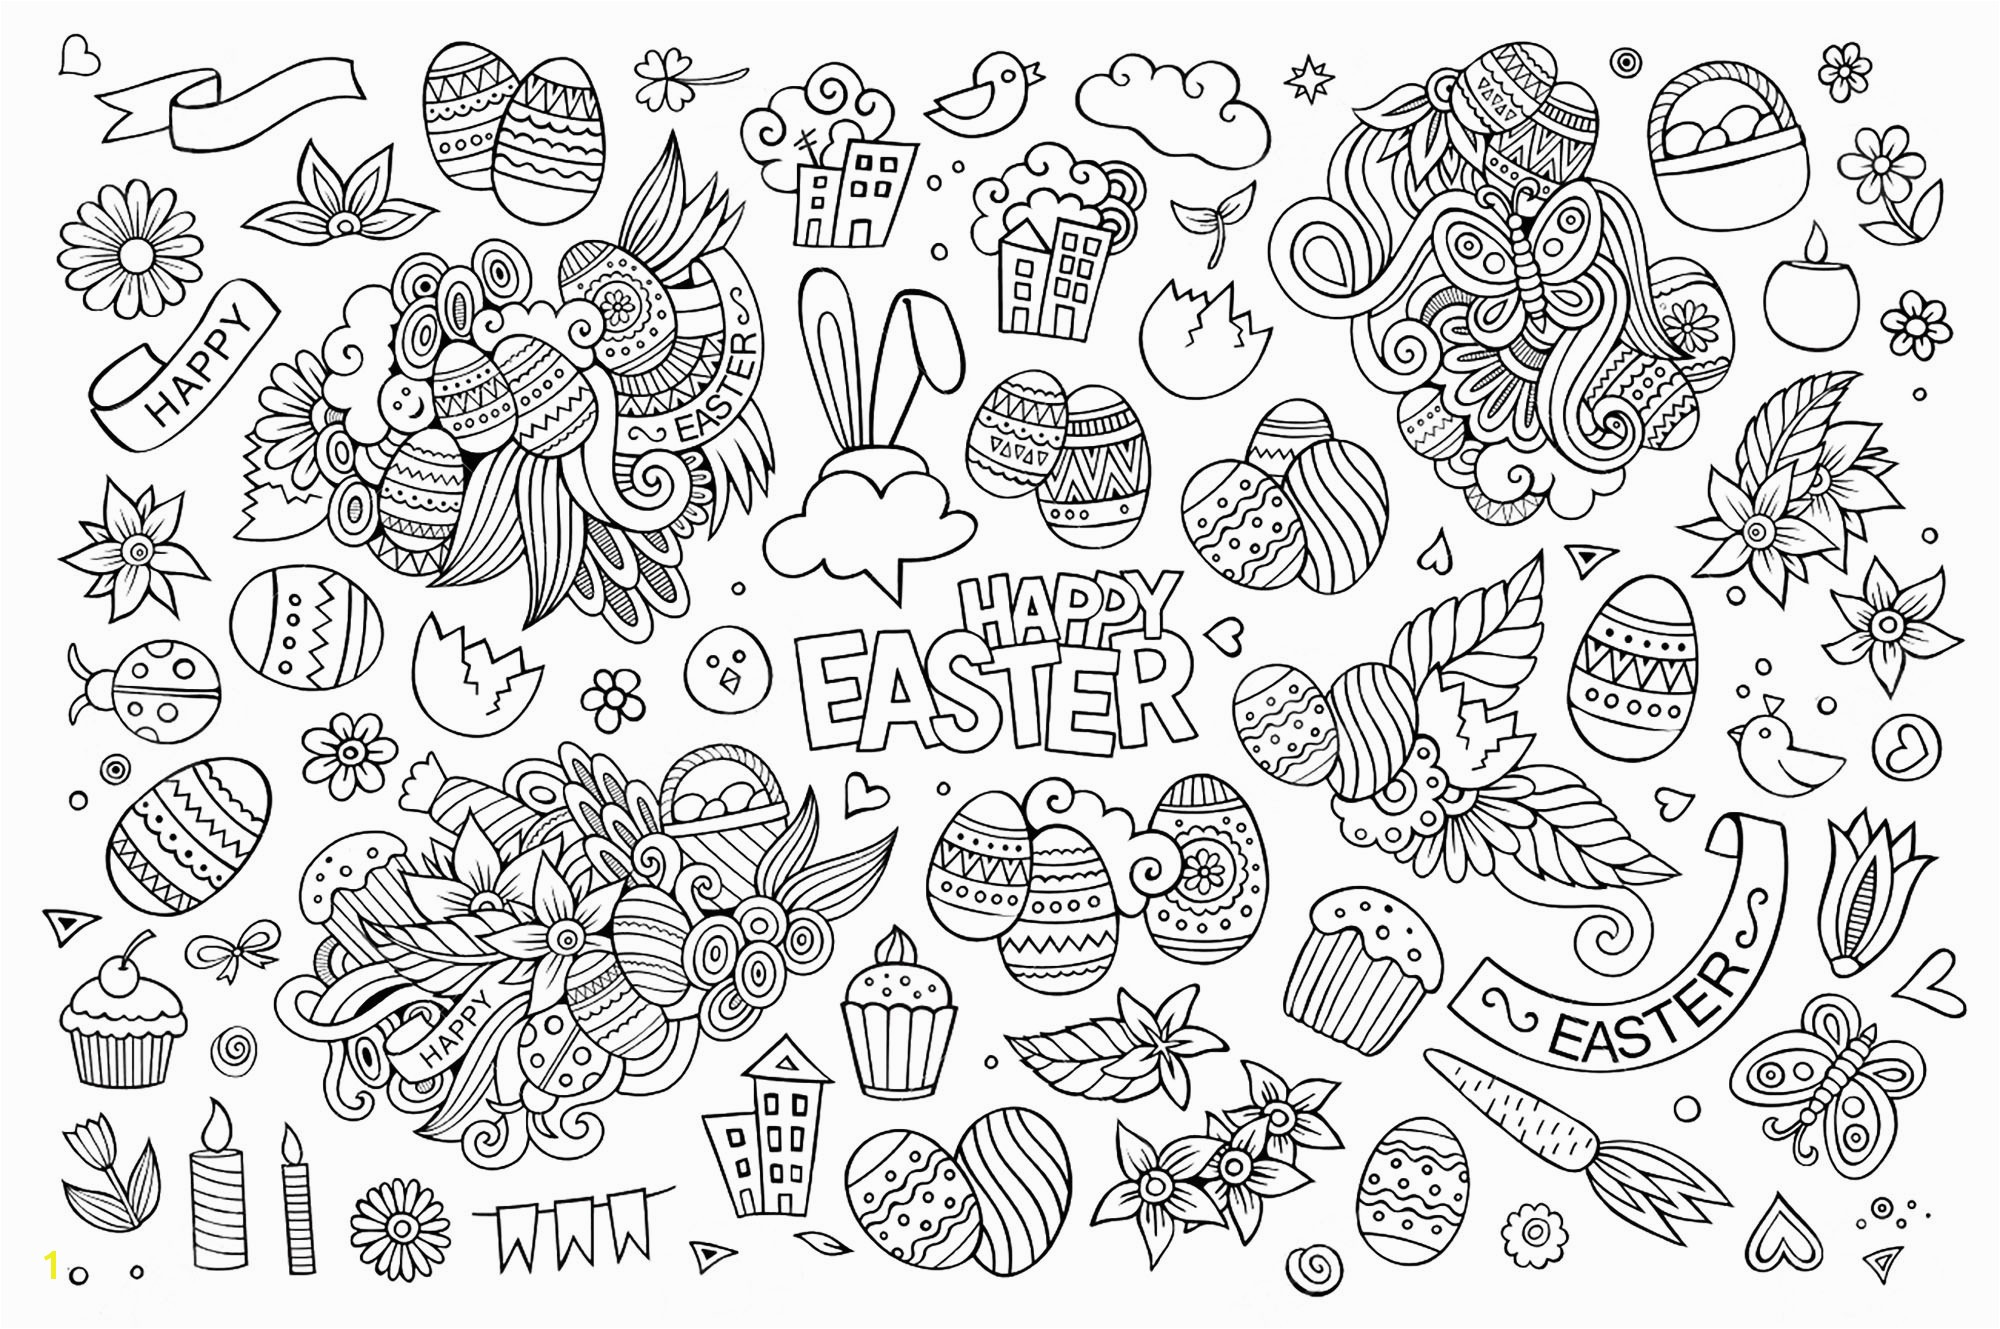 Egg Hunt Coloring Pages Unique Easter Coloring Pages for Adults Best Coloring Pages for Kids